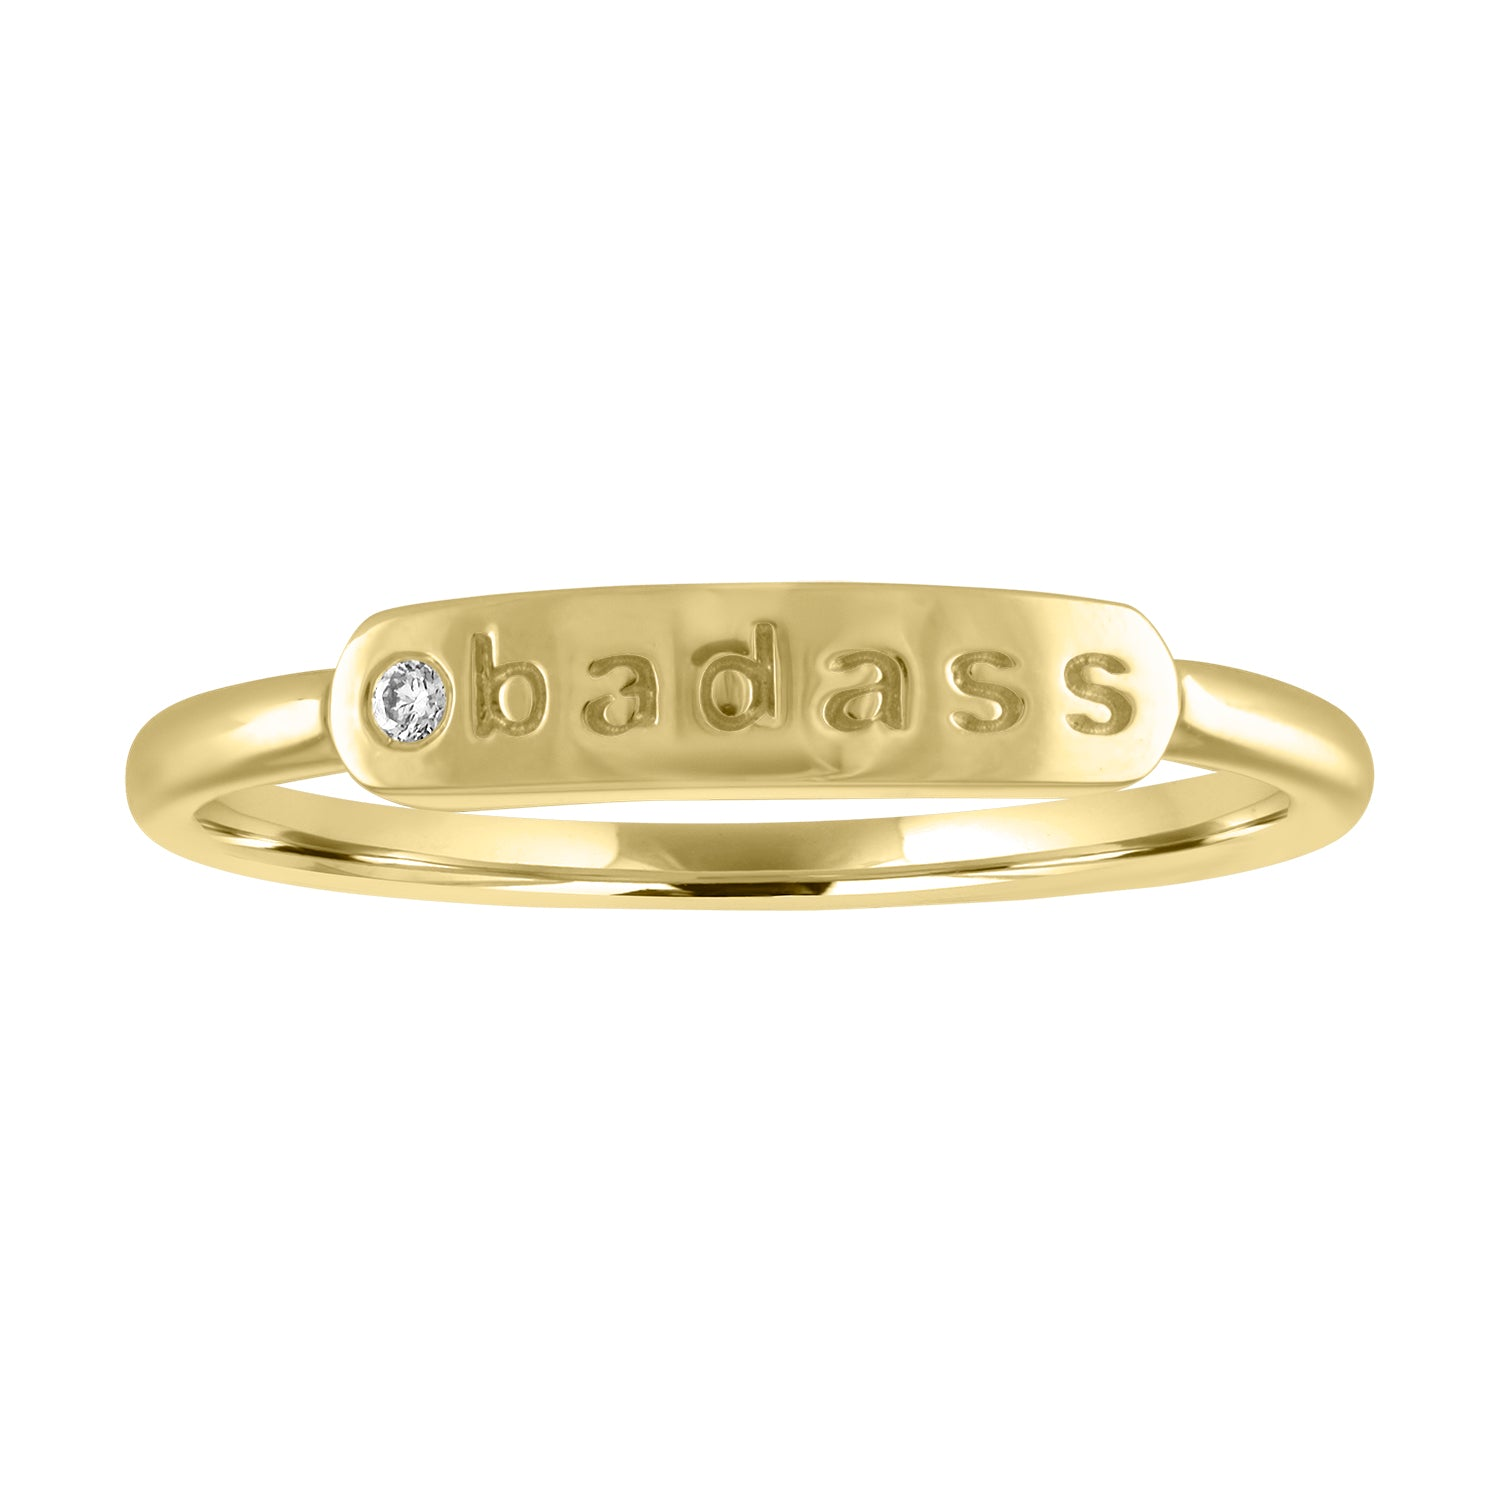 "skinny signet ring with ""badass"" and diamond"